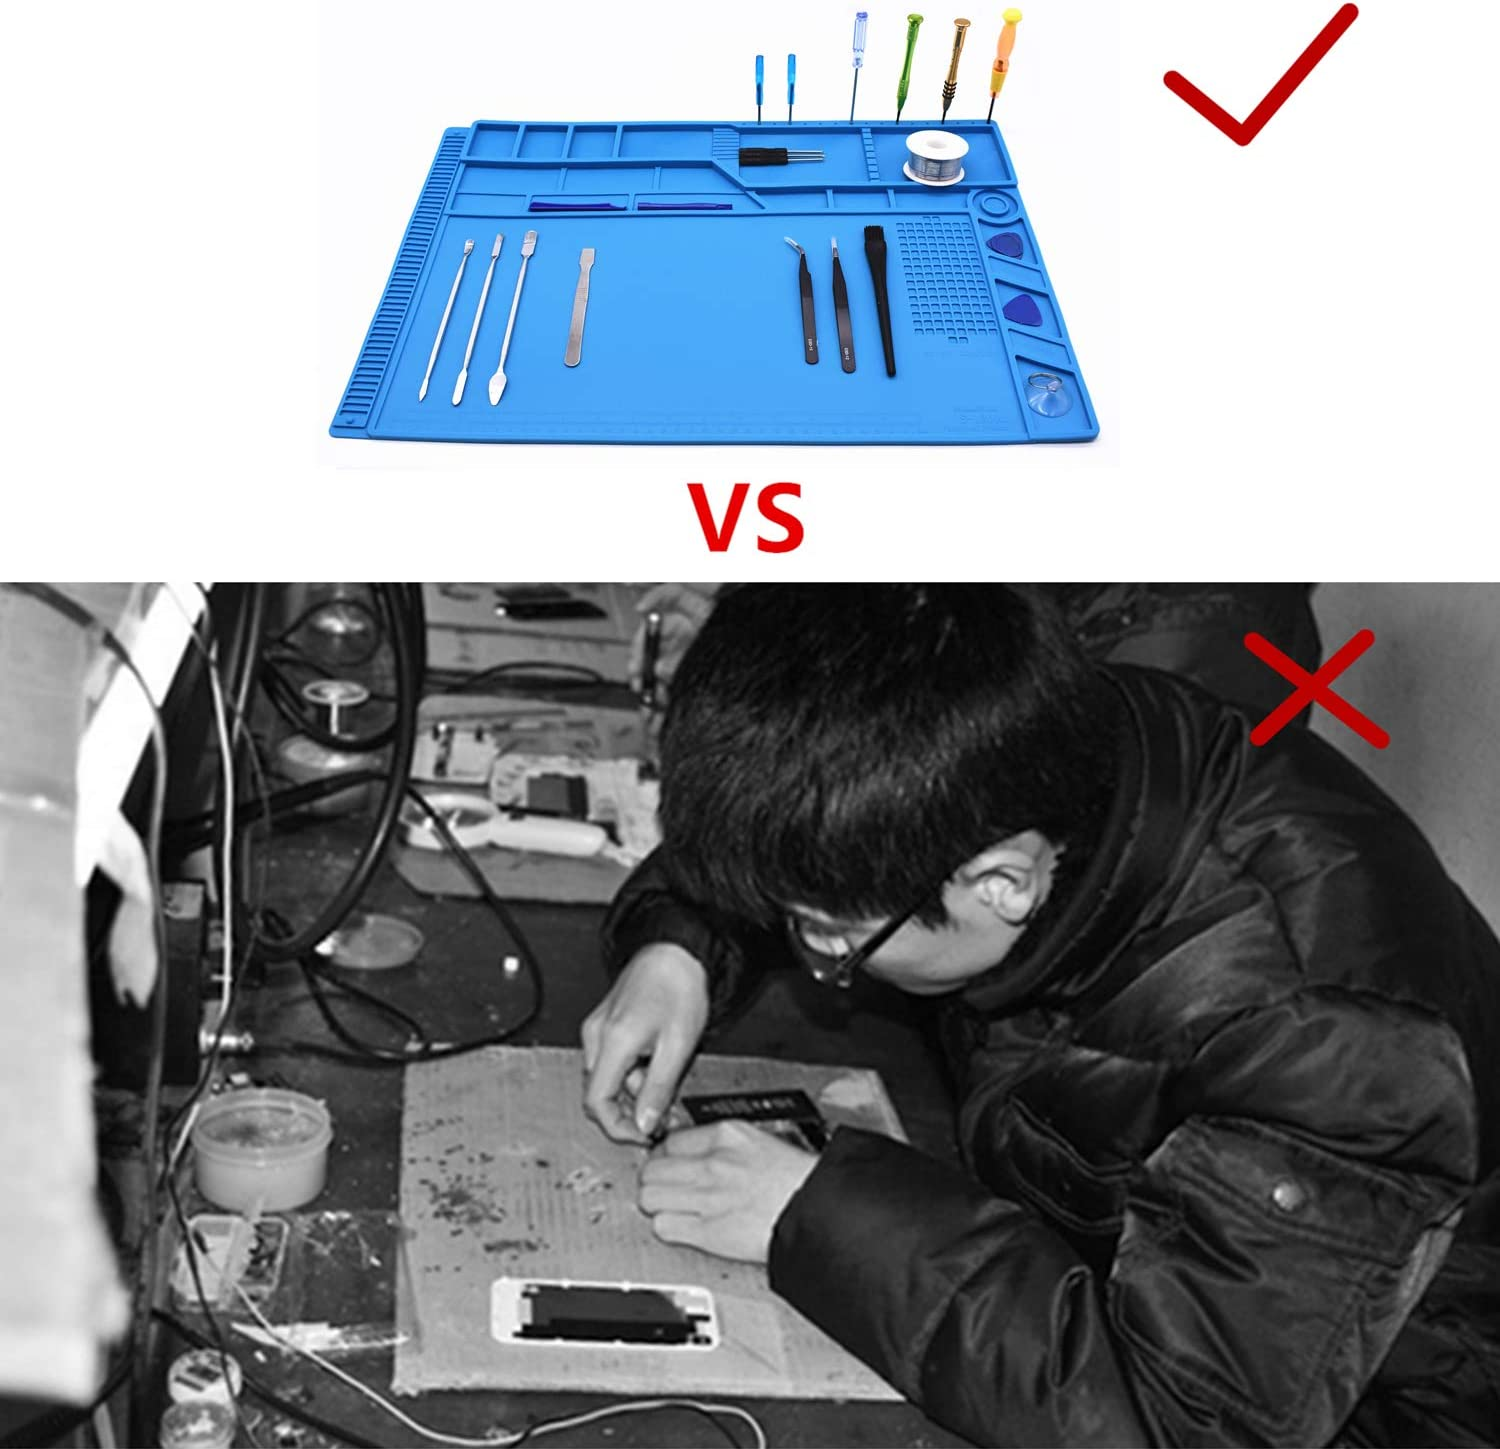 The Size 21.6 x 13.8 inch TXINLEI S180 Large Anti-Static Heat Insulation Silicone Repair Work Mat for Soldering and Computer Repair